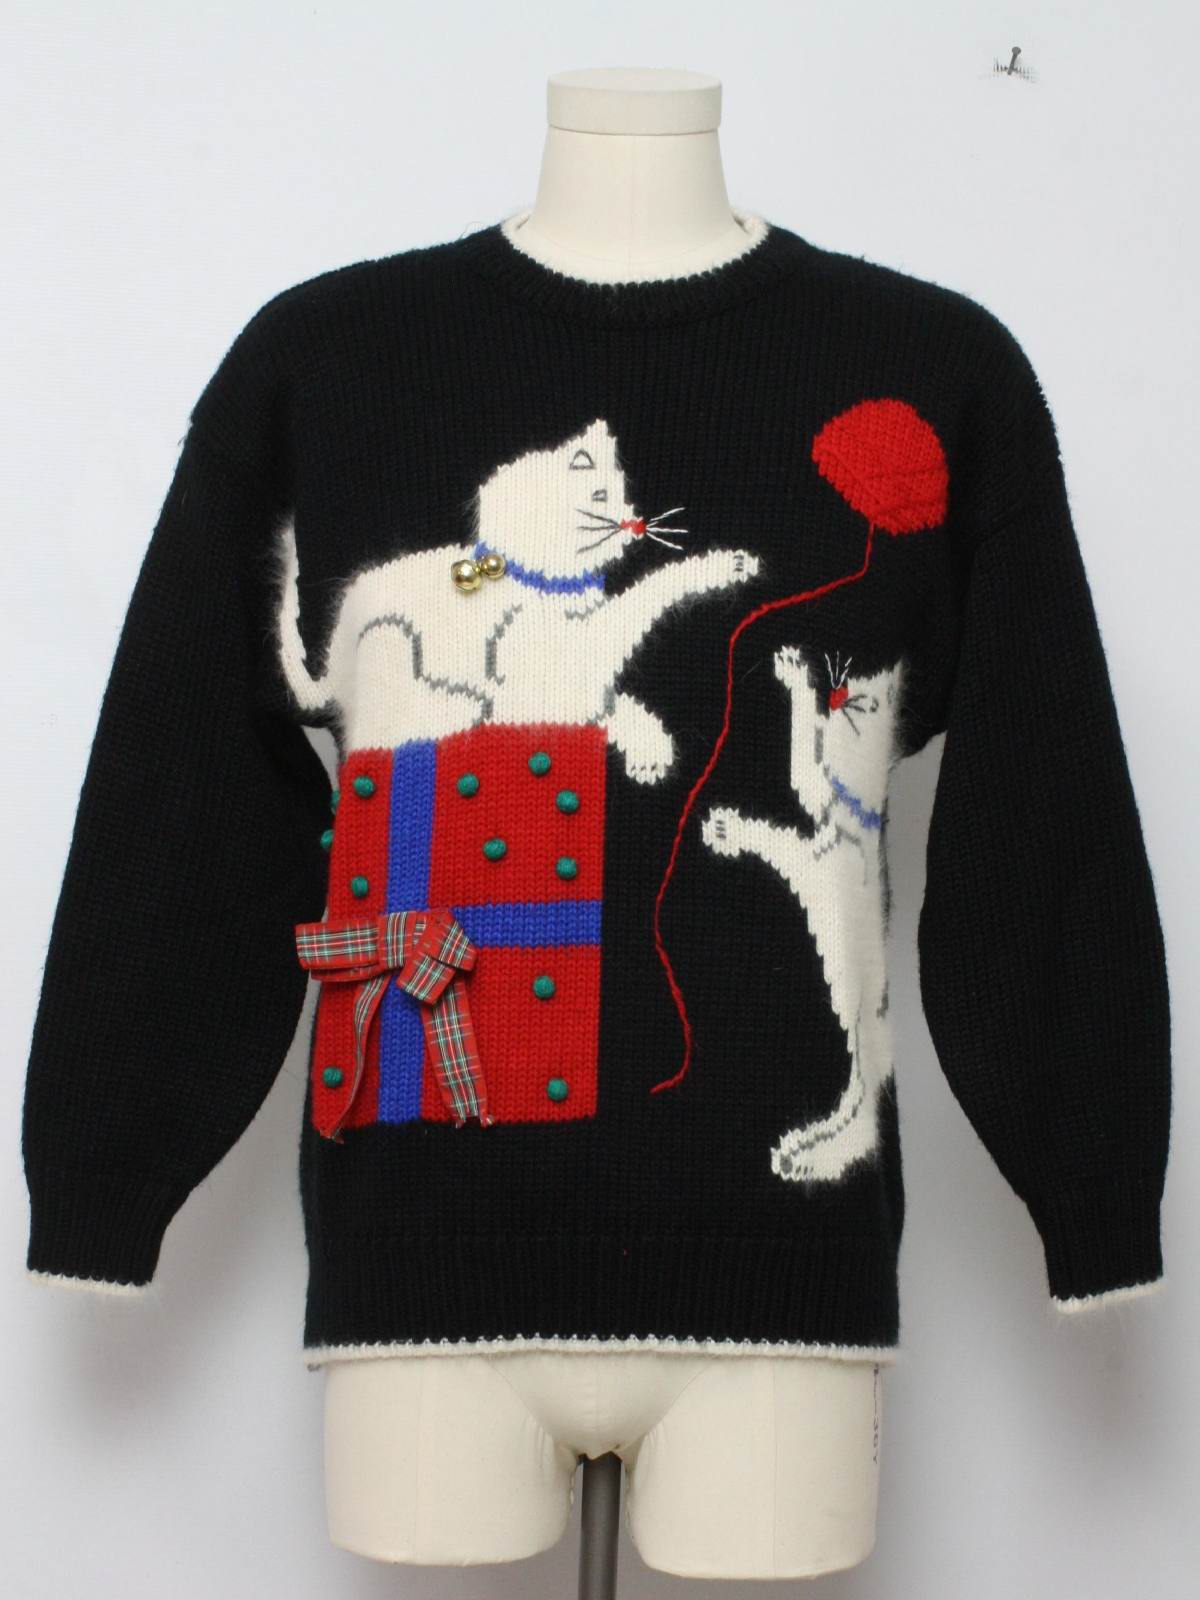 Christmas sweaters with cats on them